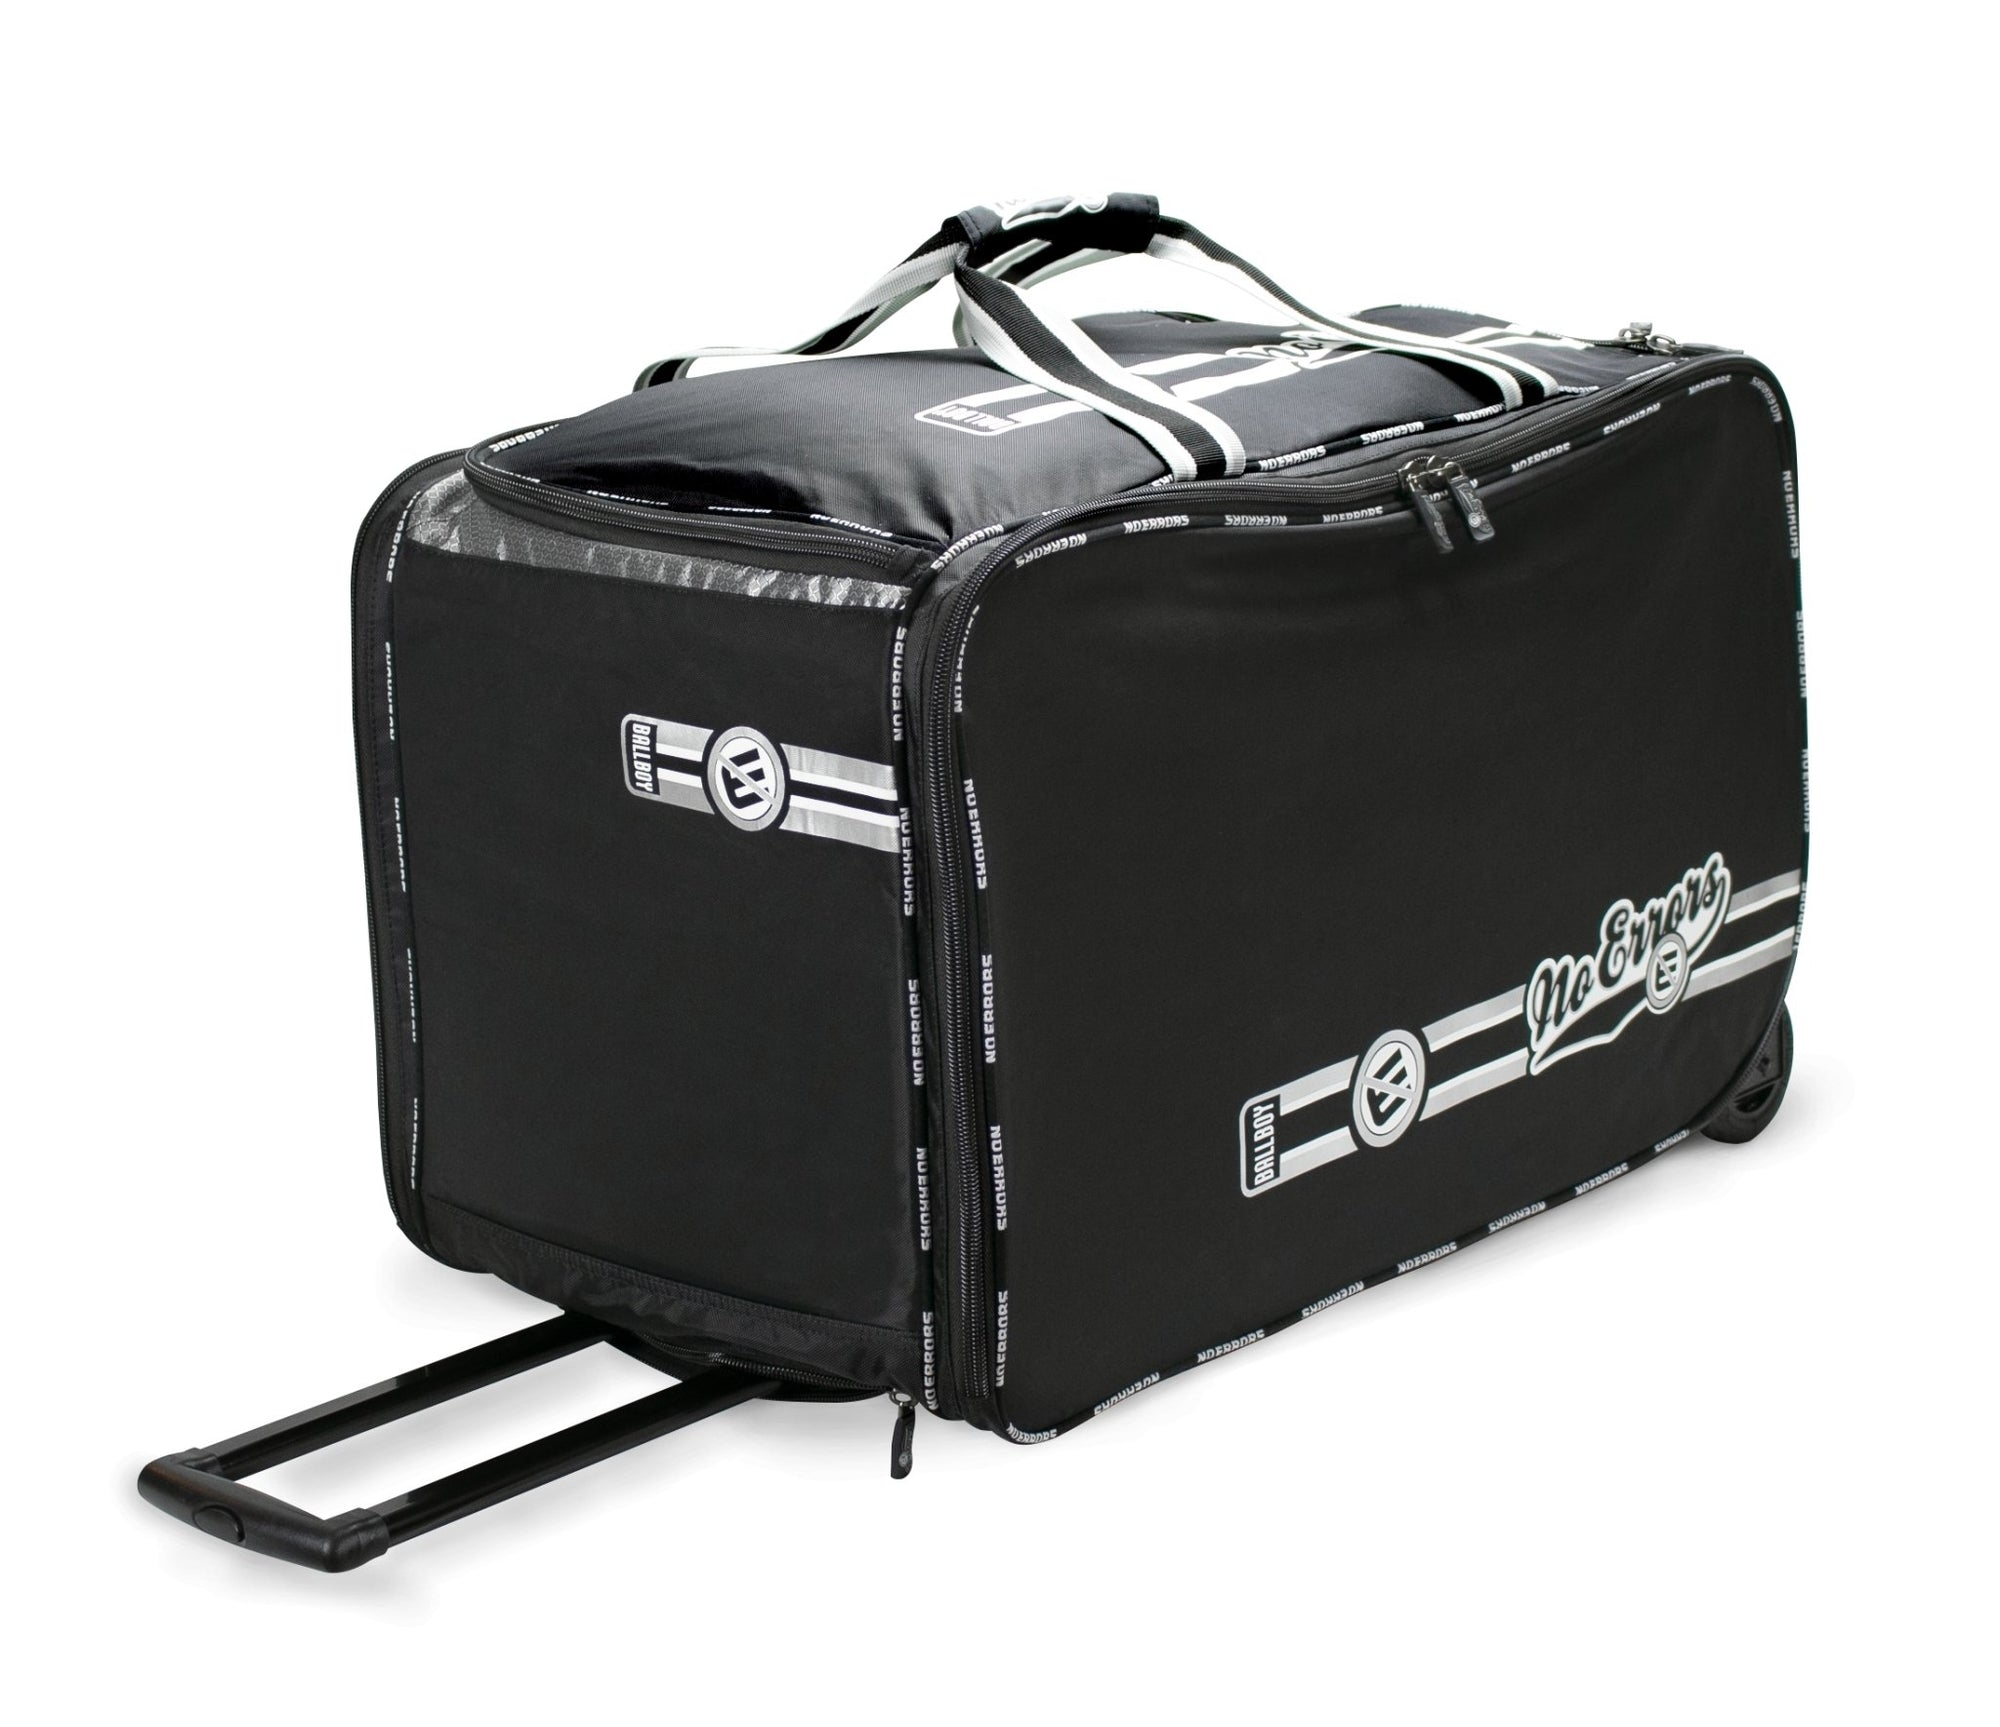 Ball Boy XL Coaches Wheel Bag